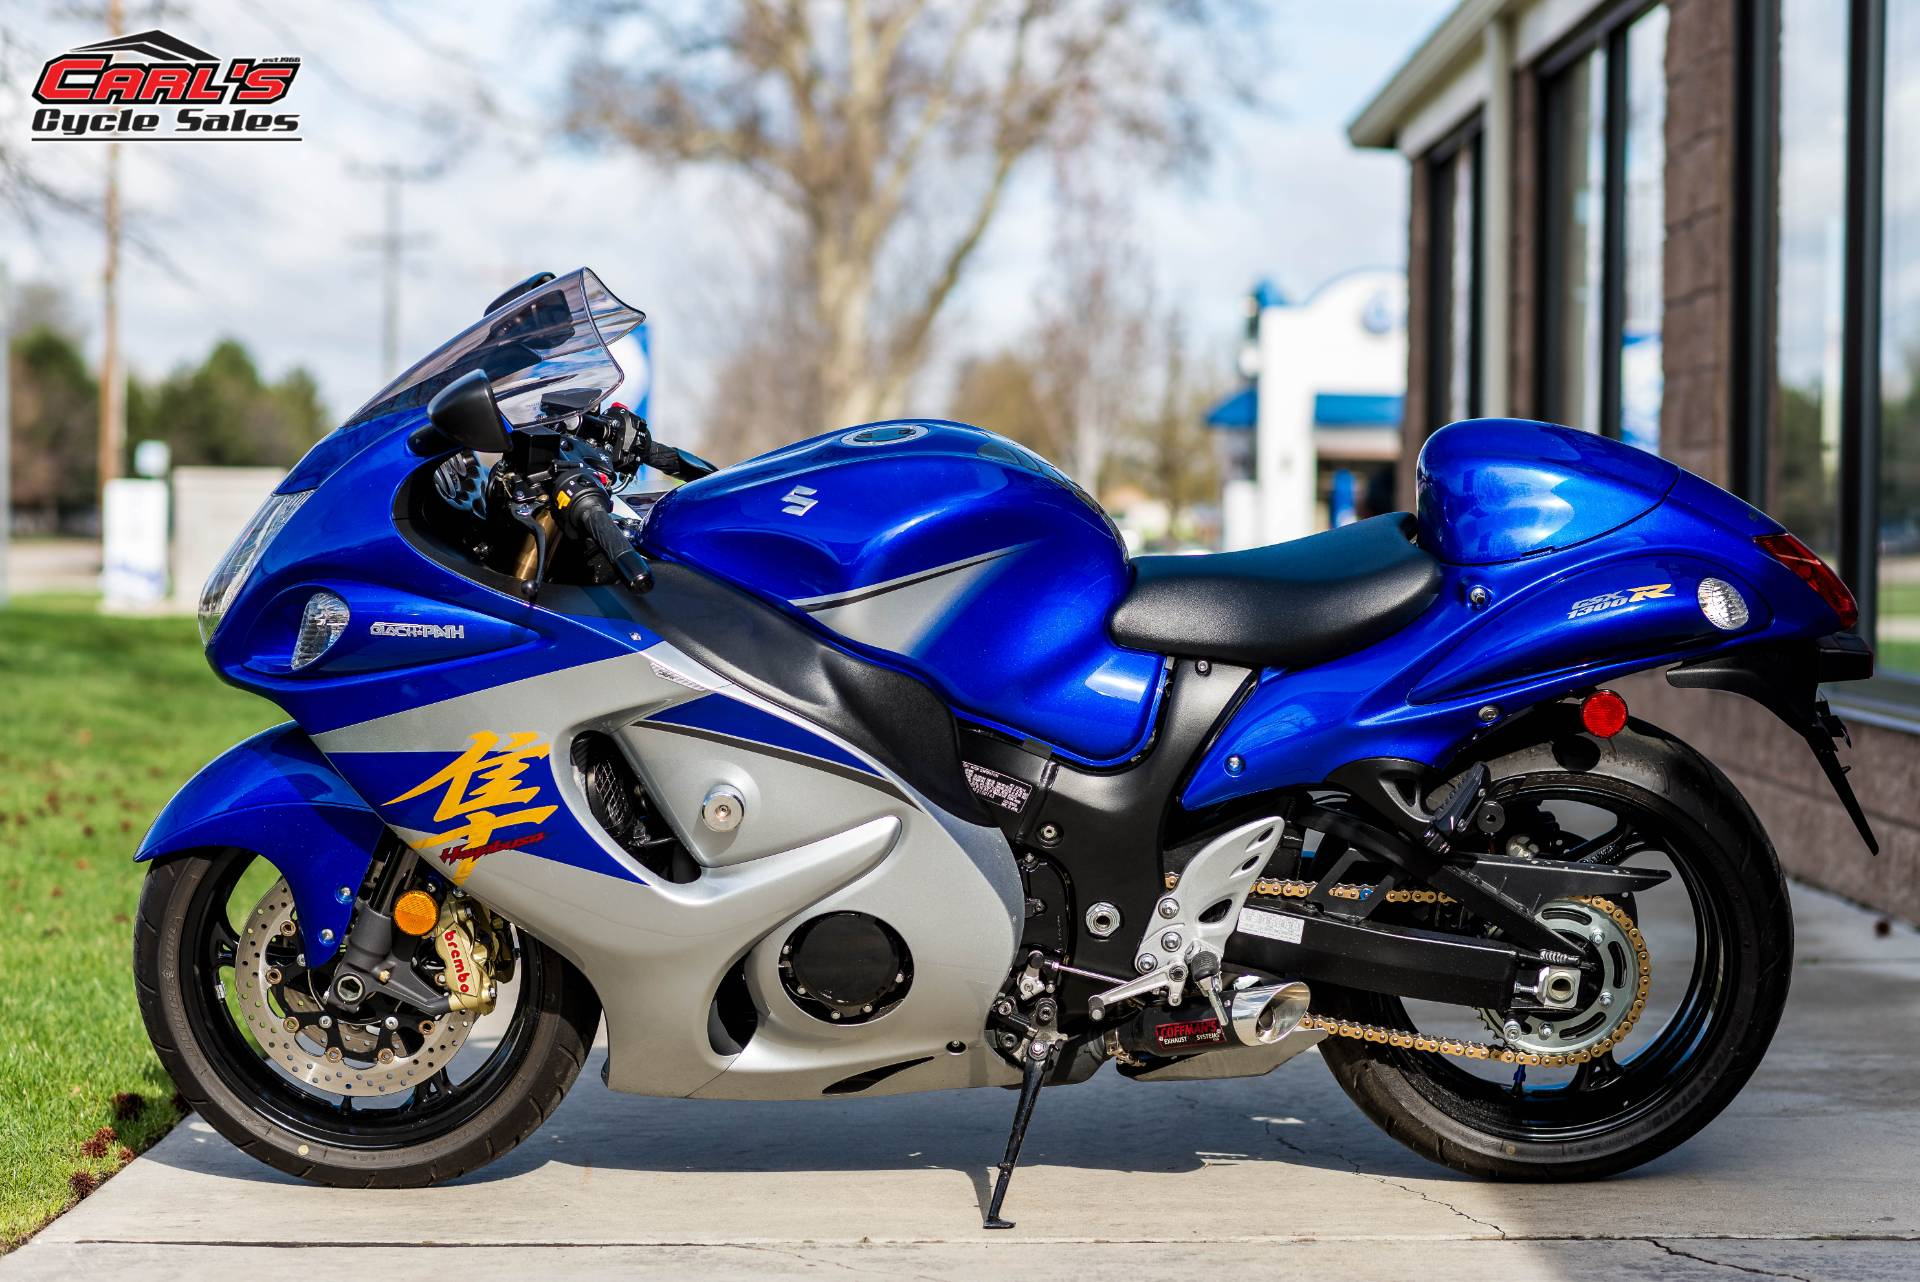 2015 Suzuki Hayabusa for sale 16332